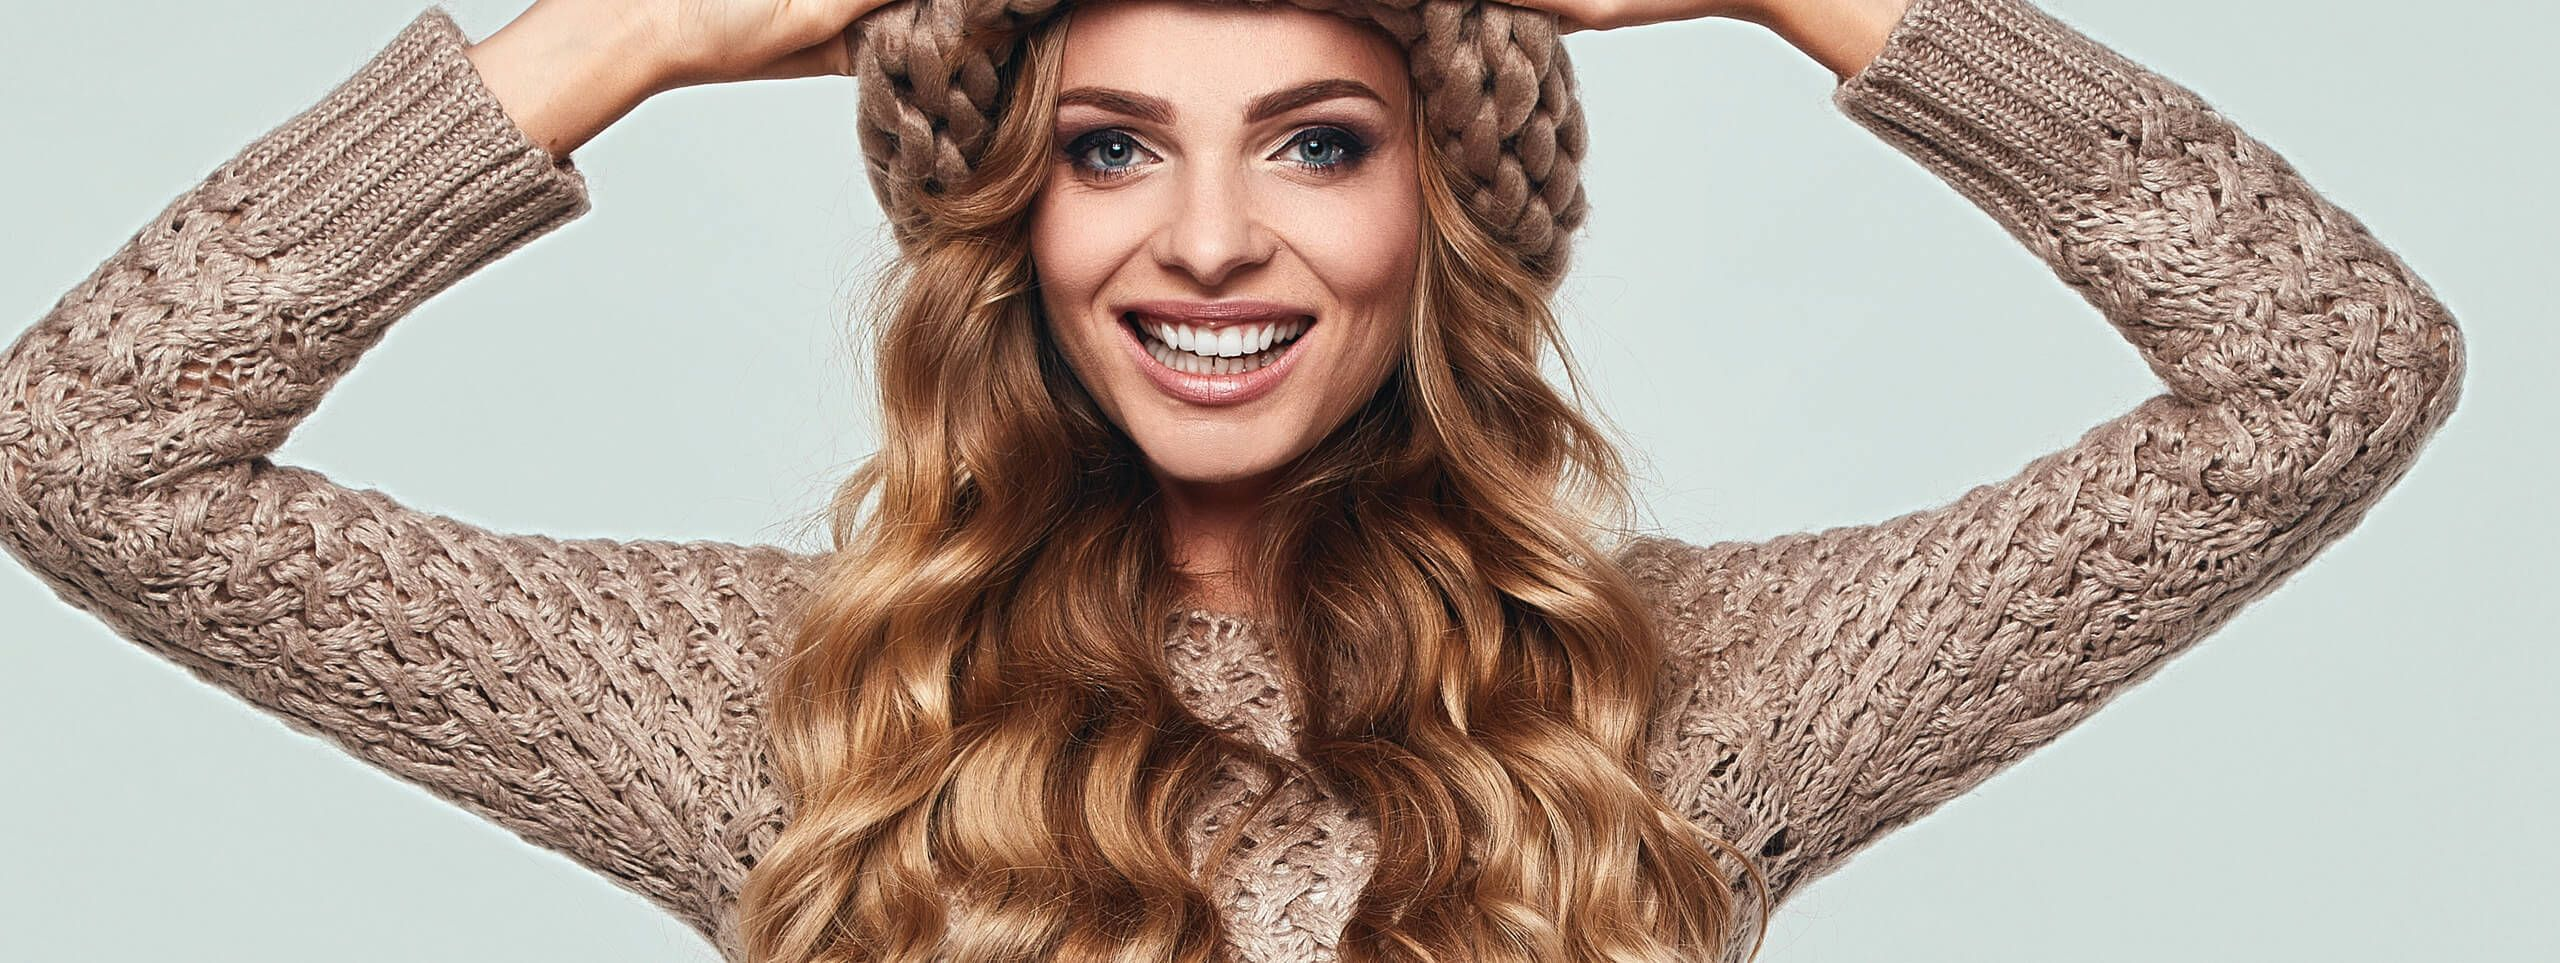 Woman wears brown wavy hairstyle under winter hat